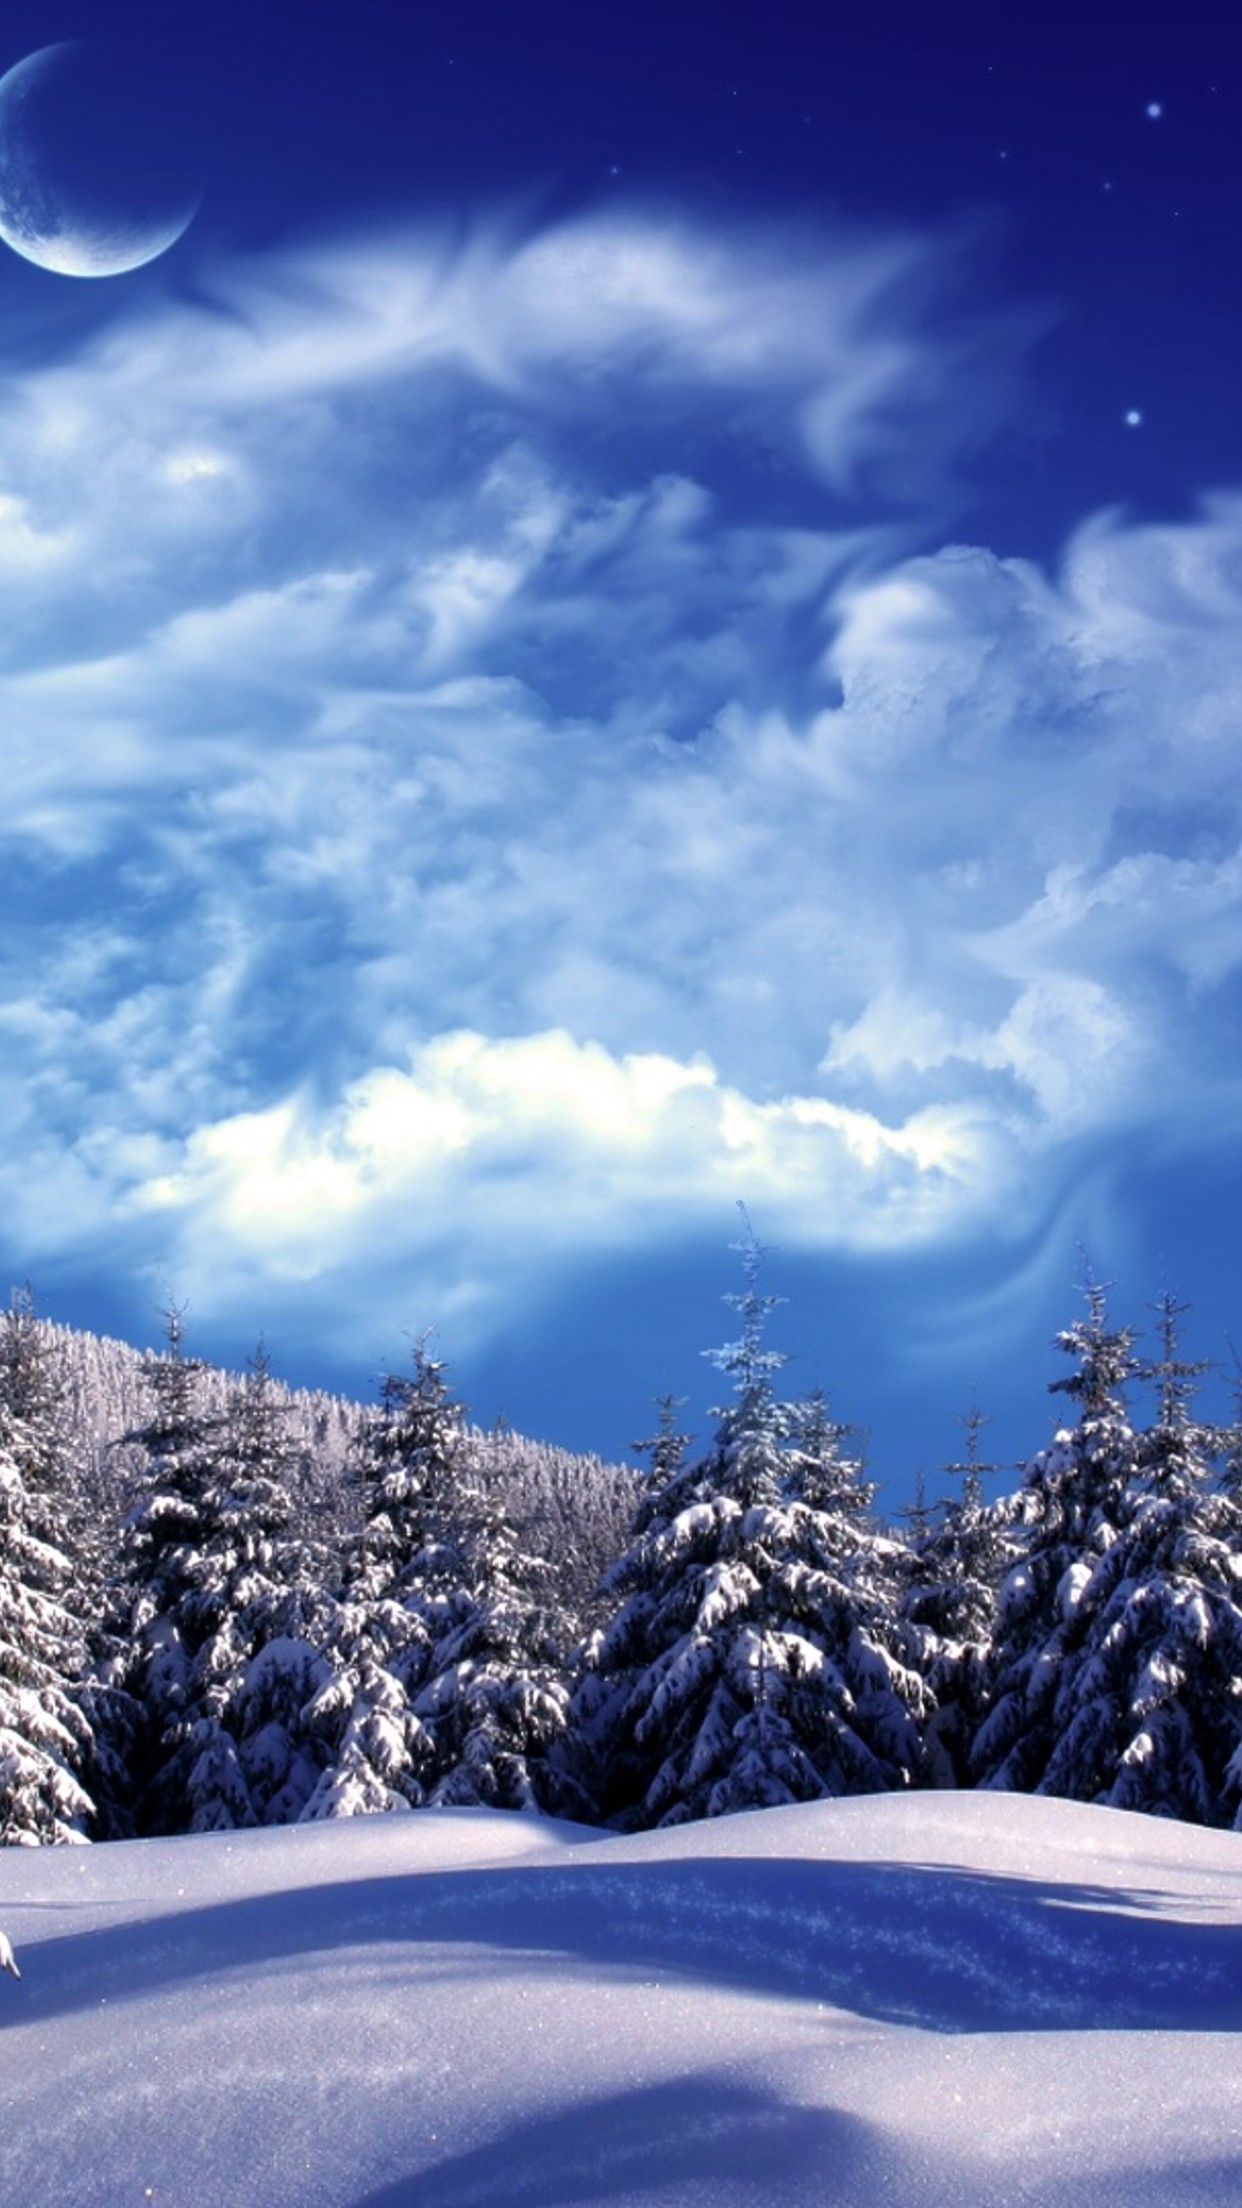 snow sky 3Wallpapers iPhone Parallax Les 3Wallpapers iPhone du jour (18/02/2016)